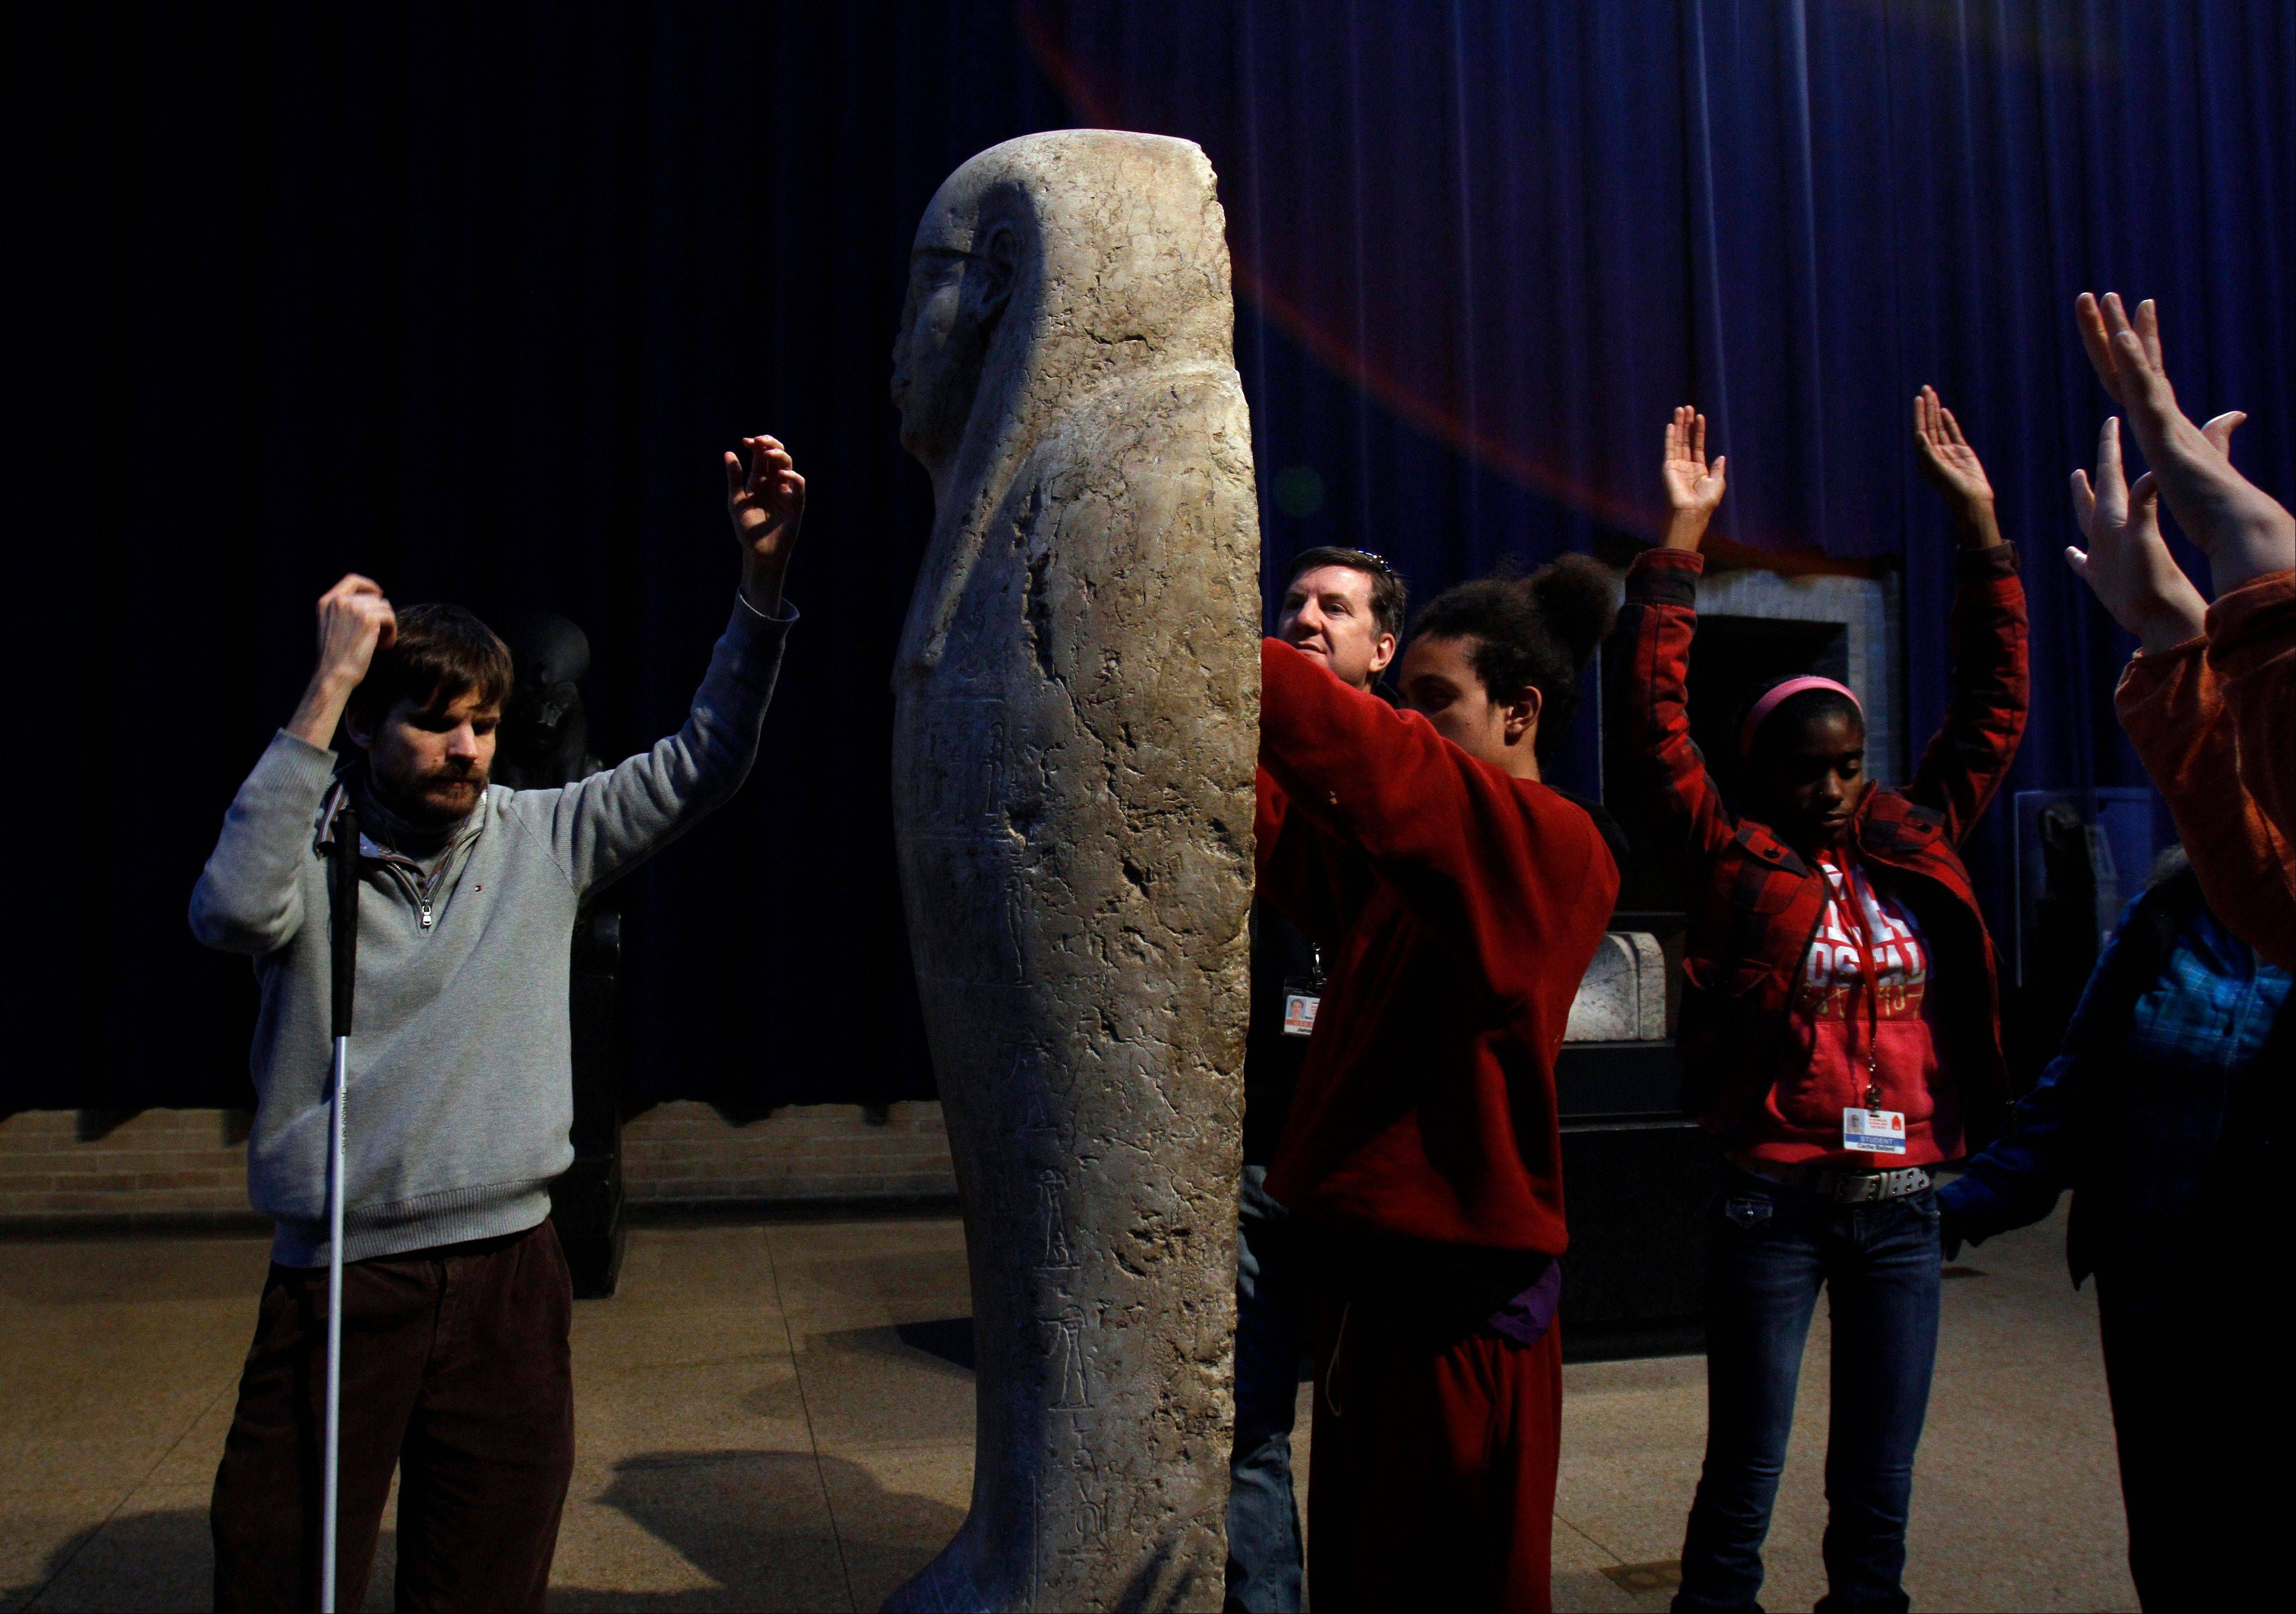 Docen Austin Seraphin, left, blind high school student Angel Ayala, center and blind high school student Cache Ballard, right, raise their arms as part of a lesson during a special tour for the blind and visually impaired at the Penn Museum in Philadelphia. The Penn Museum, part of the University of Pennsylvania, began offering touch tours to the blind and visually impaired in 2012 as part of an initiative to make their extensive collections more accessible. Seraphin is also blind and helped develop the tour.